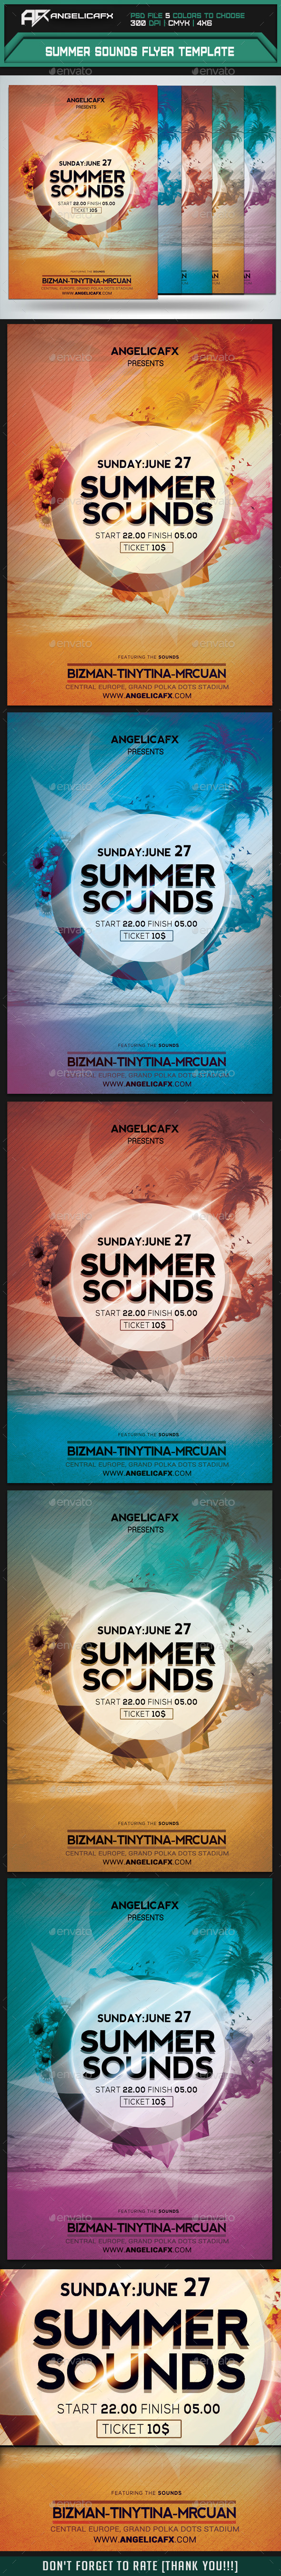 Summer Sounds Flyer Template - Events Flyers